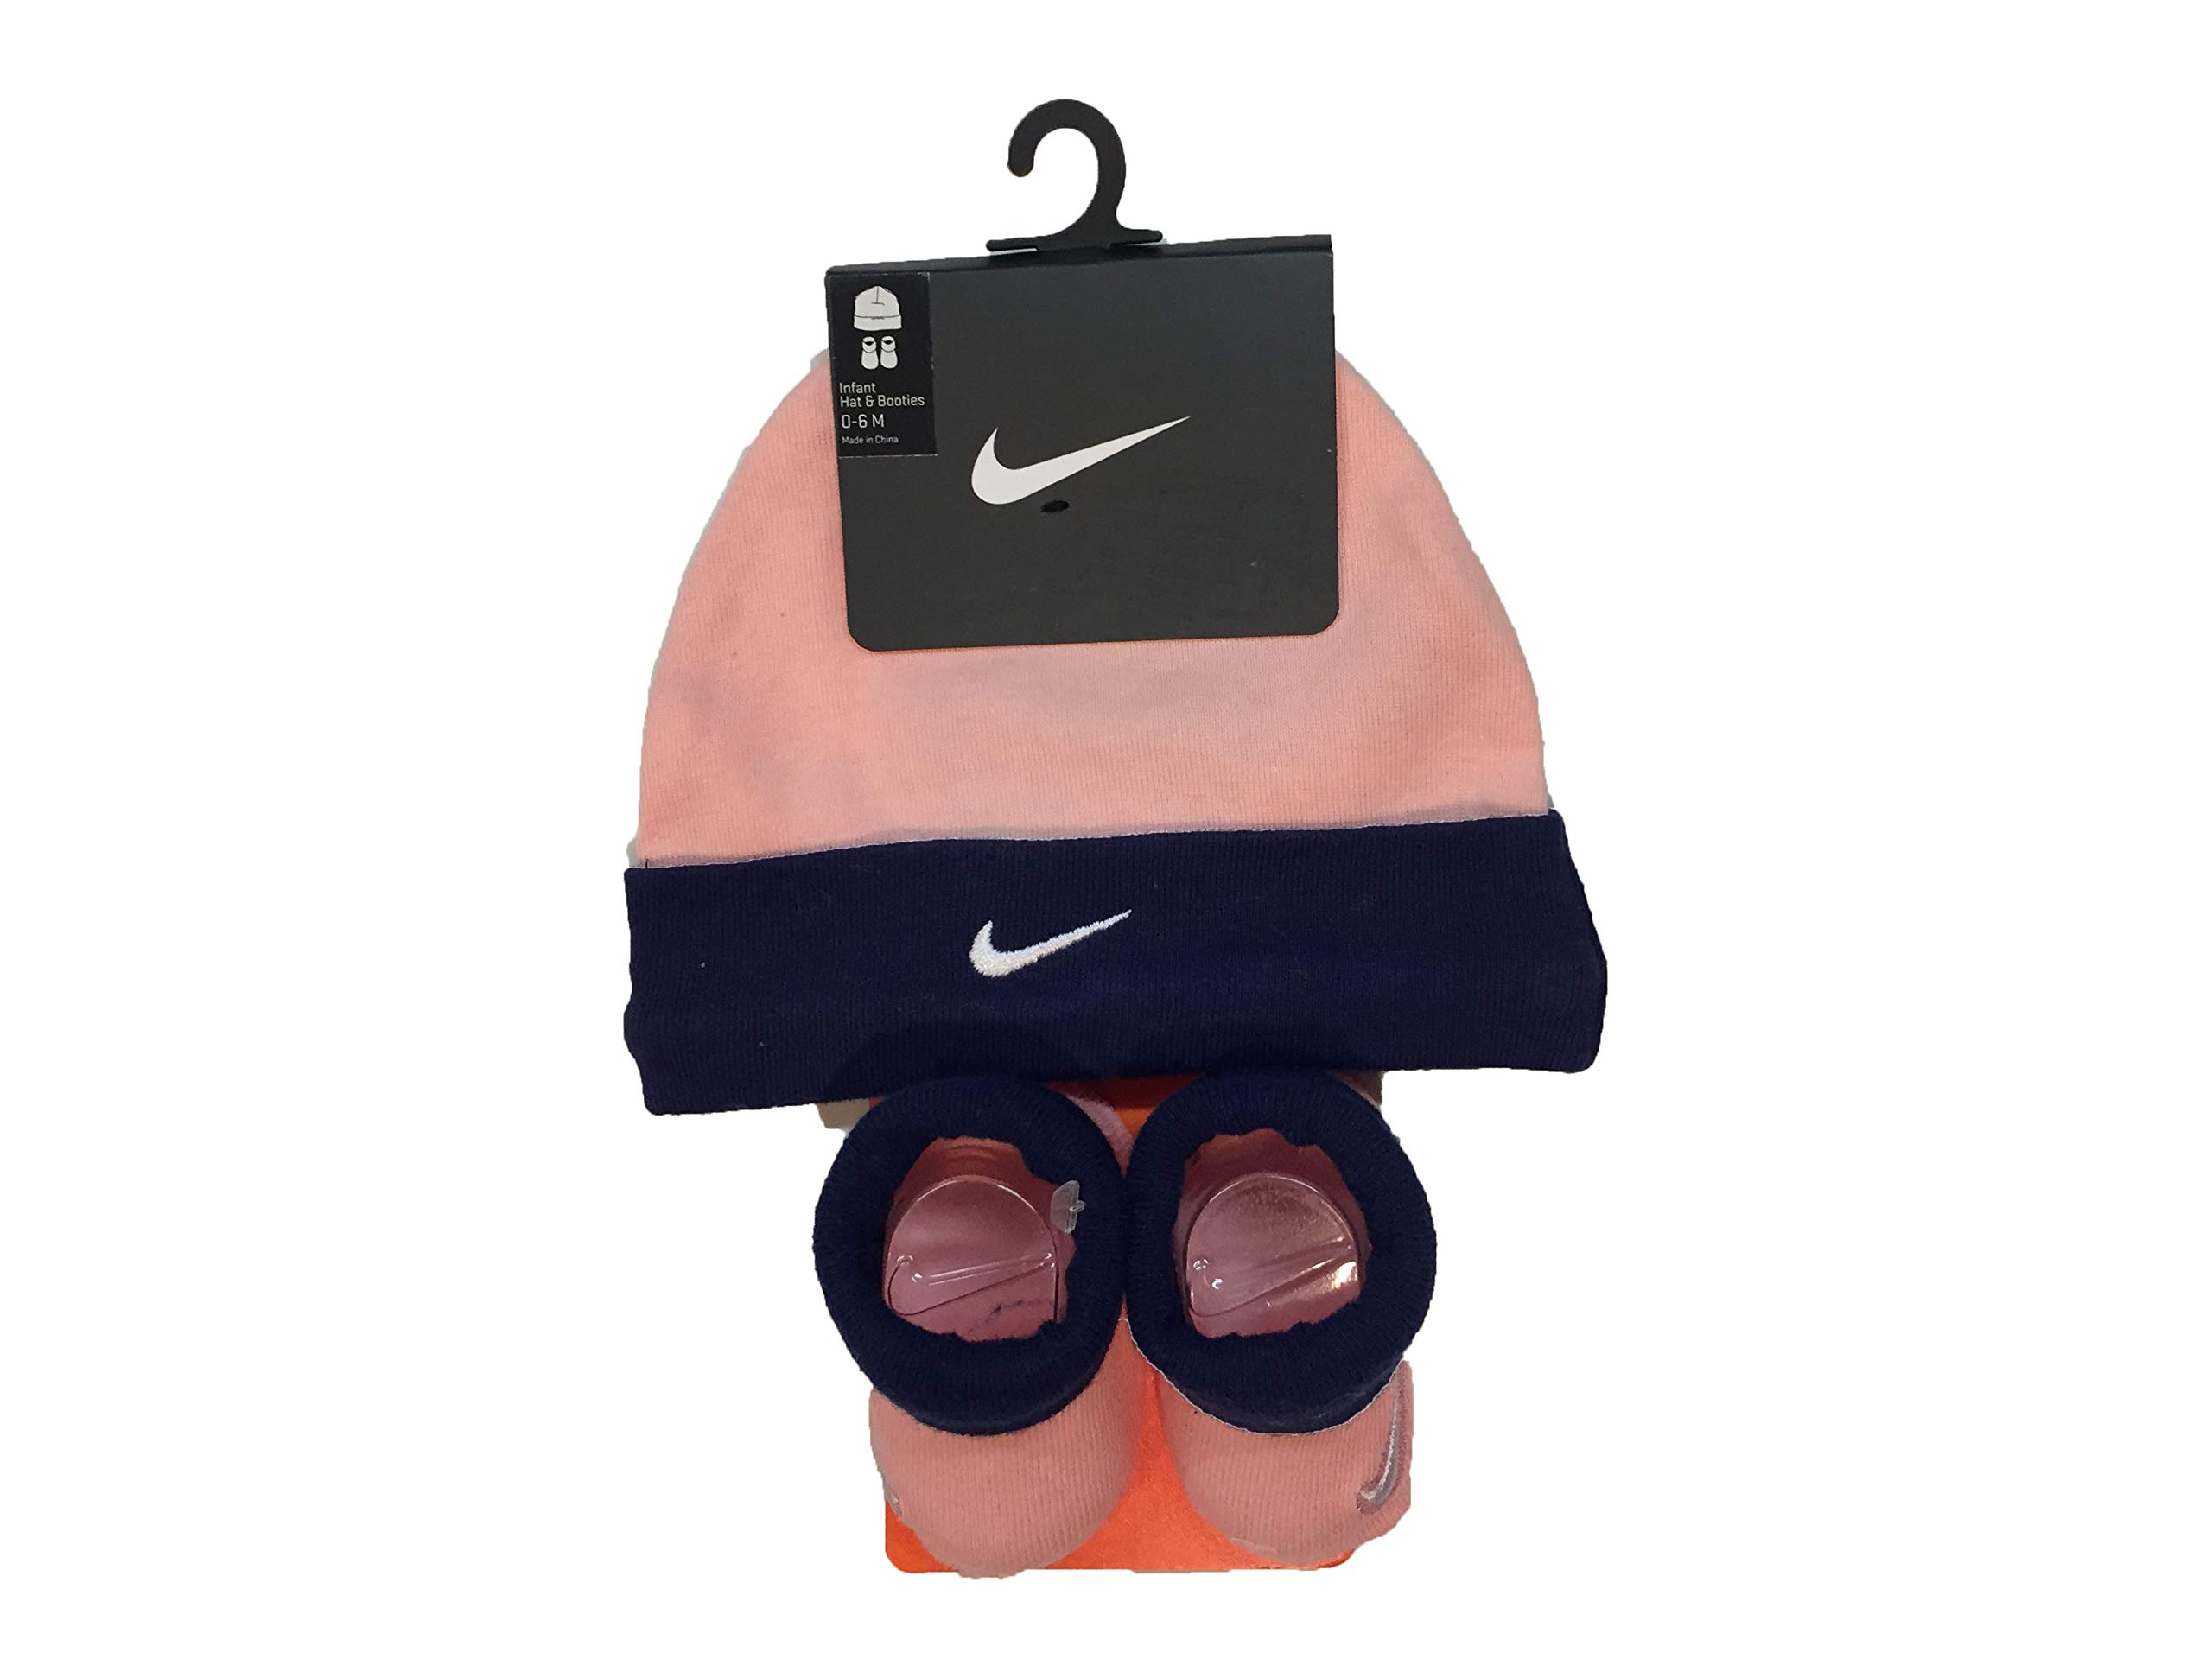 Nike Jordan Infant Baby Hat and Booties Set (Peach(LN0052-A6P)/Navy, 0-6 Months) by Nike